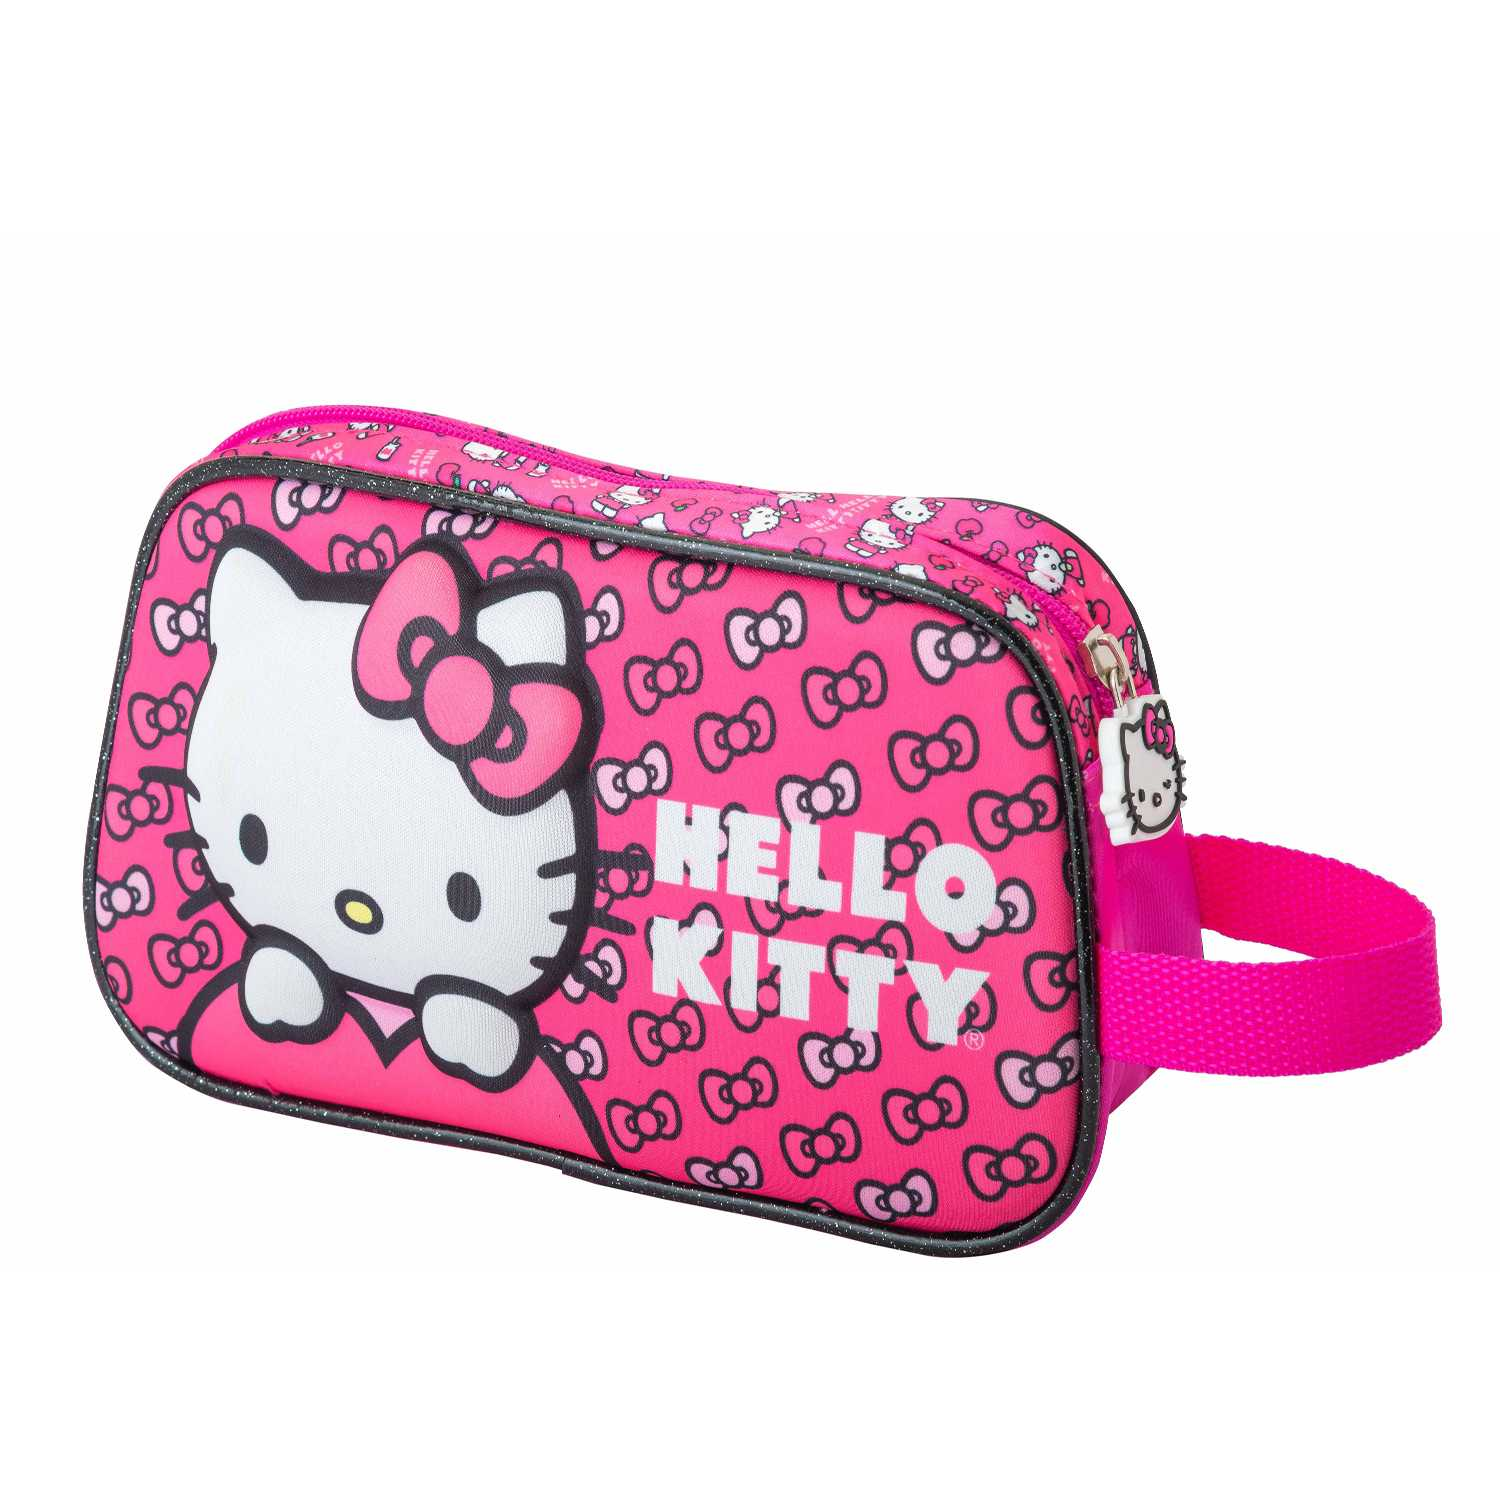 Cartuchera de Niña Scool Fucsia 9 scool hello kitty cart fantasia division